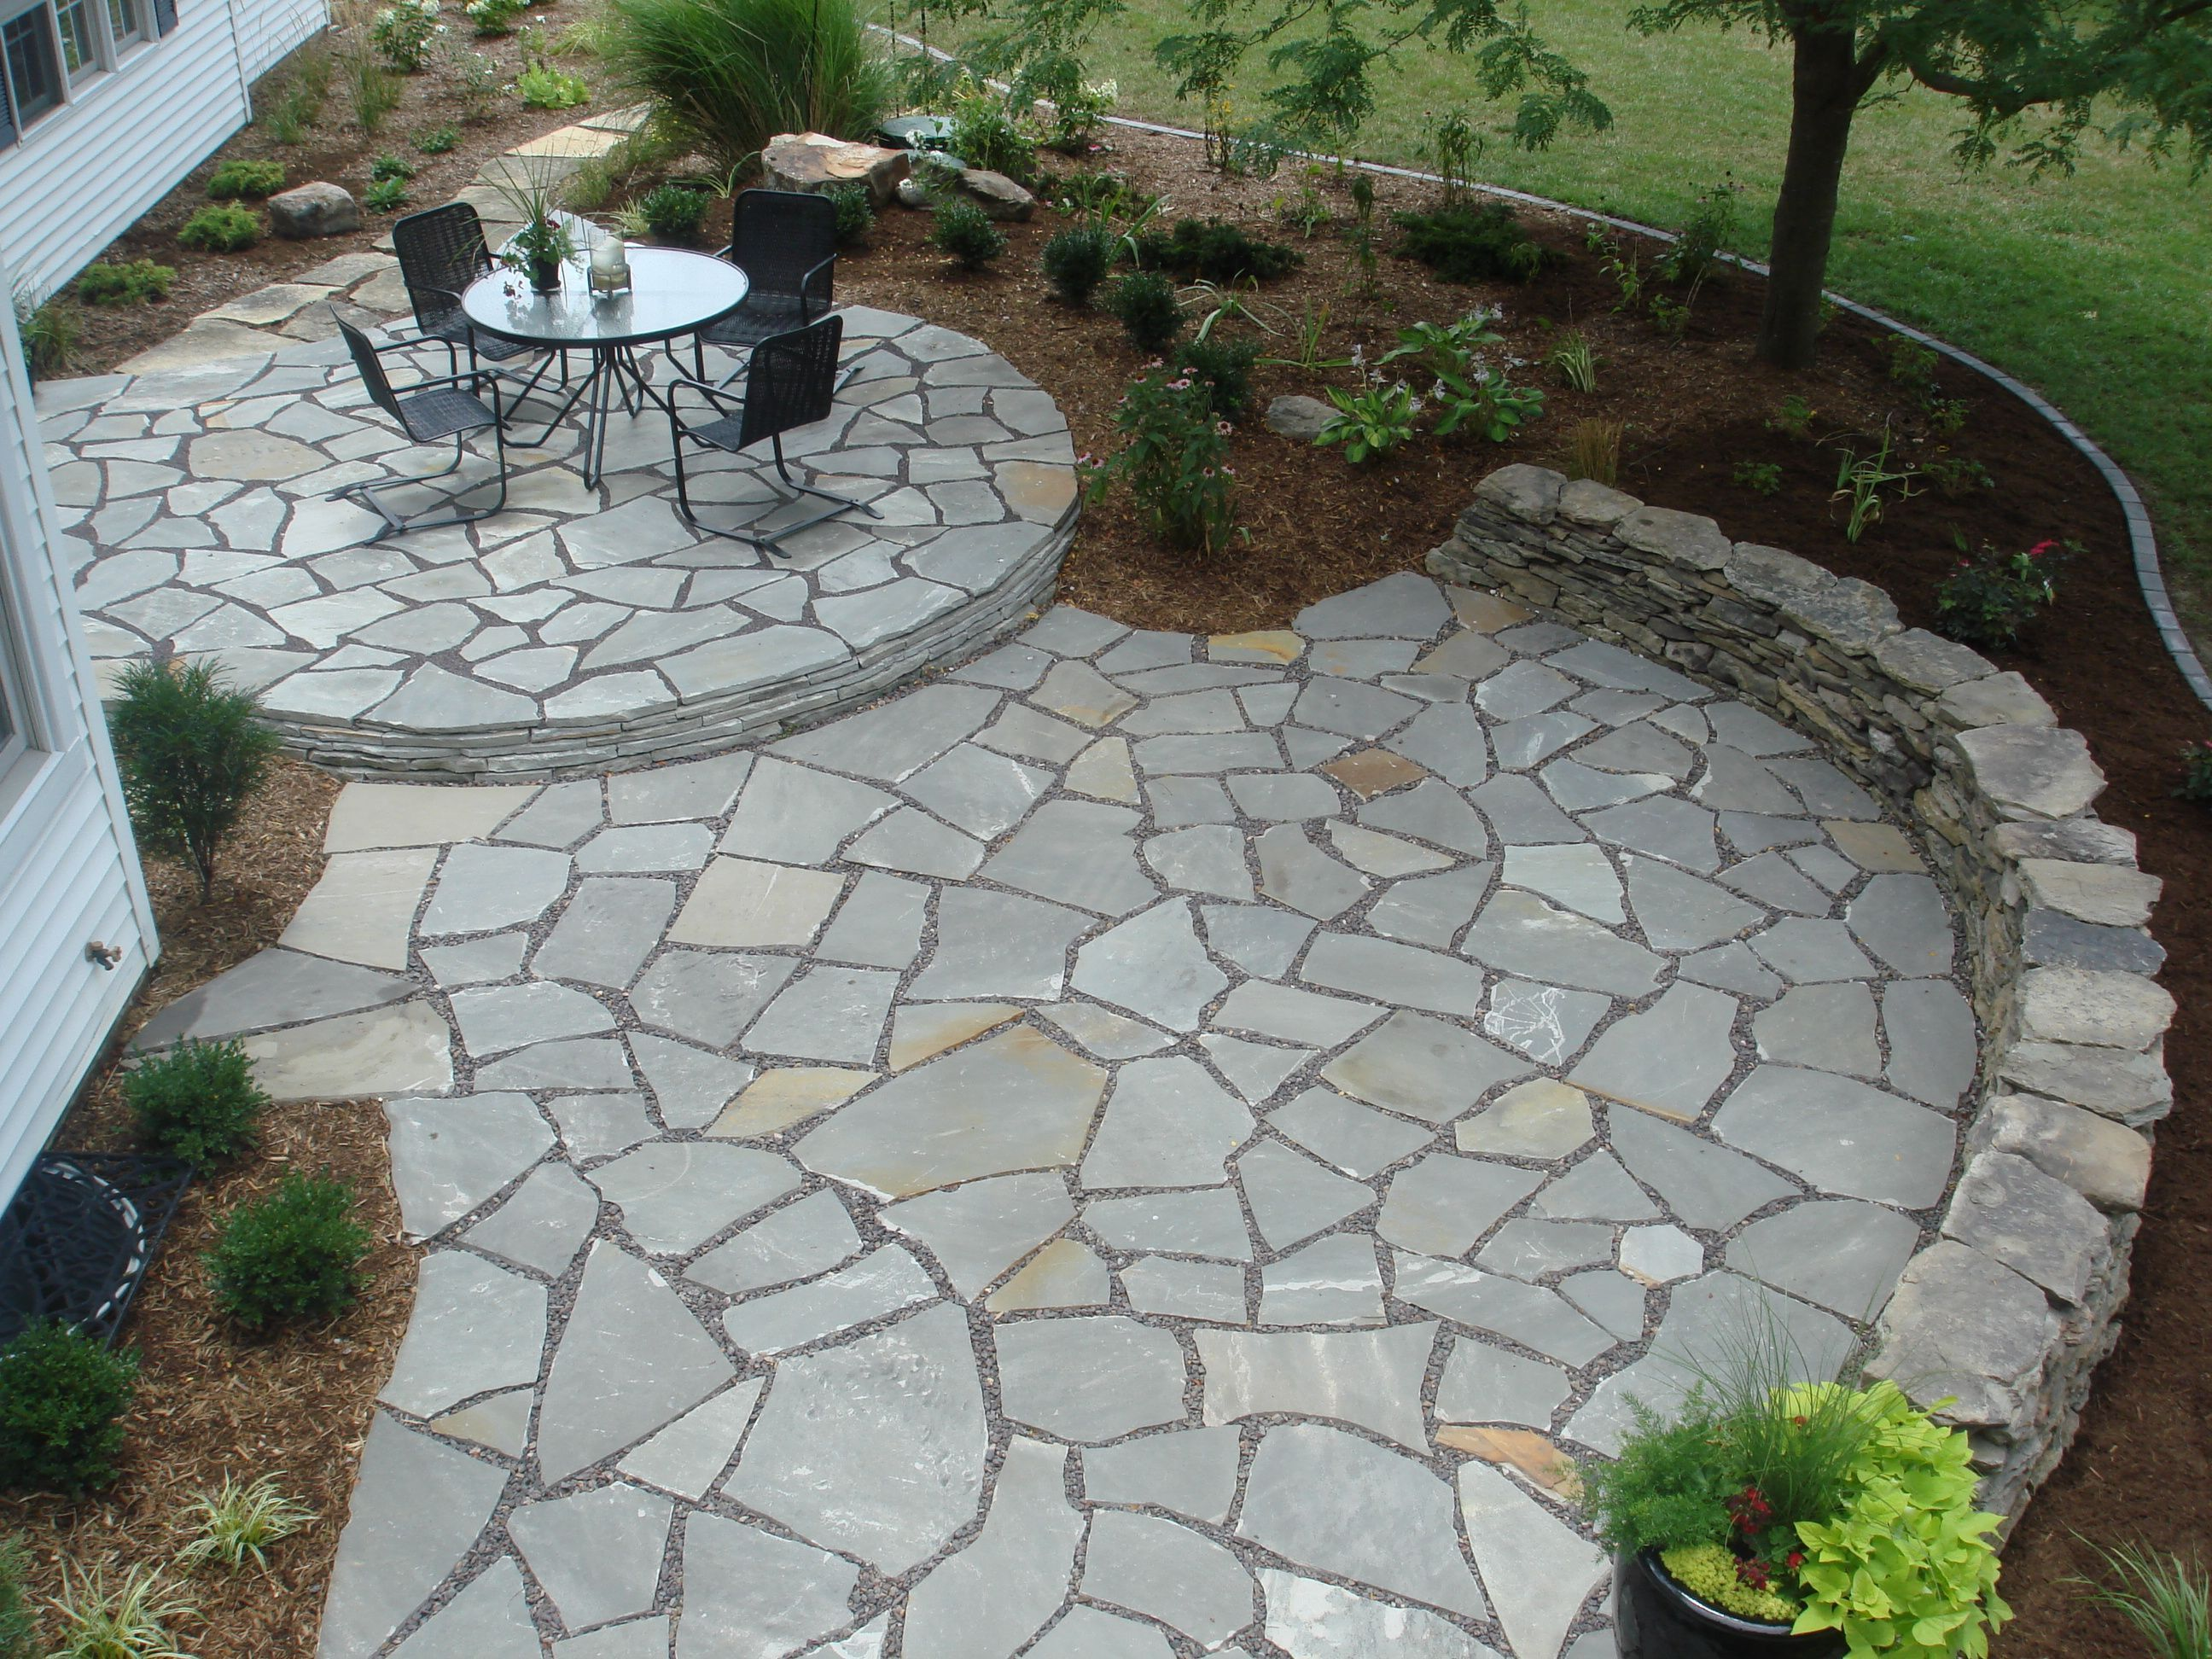 Lovely Dry Laid Flagstone Patio | Stone Patio Cost | Diy Stone Patio Ideas | Stone  Patio Ideas On A Budget | Backyard Stone Patio Design Ideas | How To Build  A ...